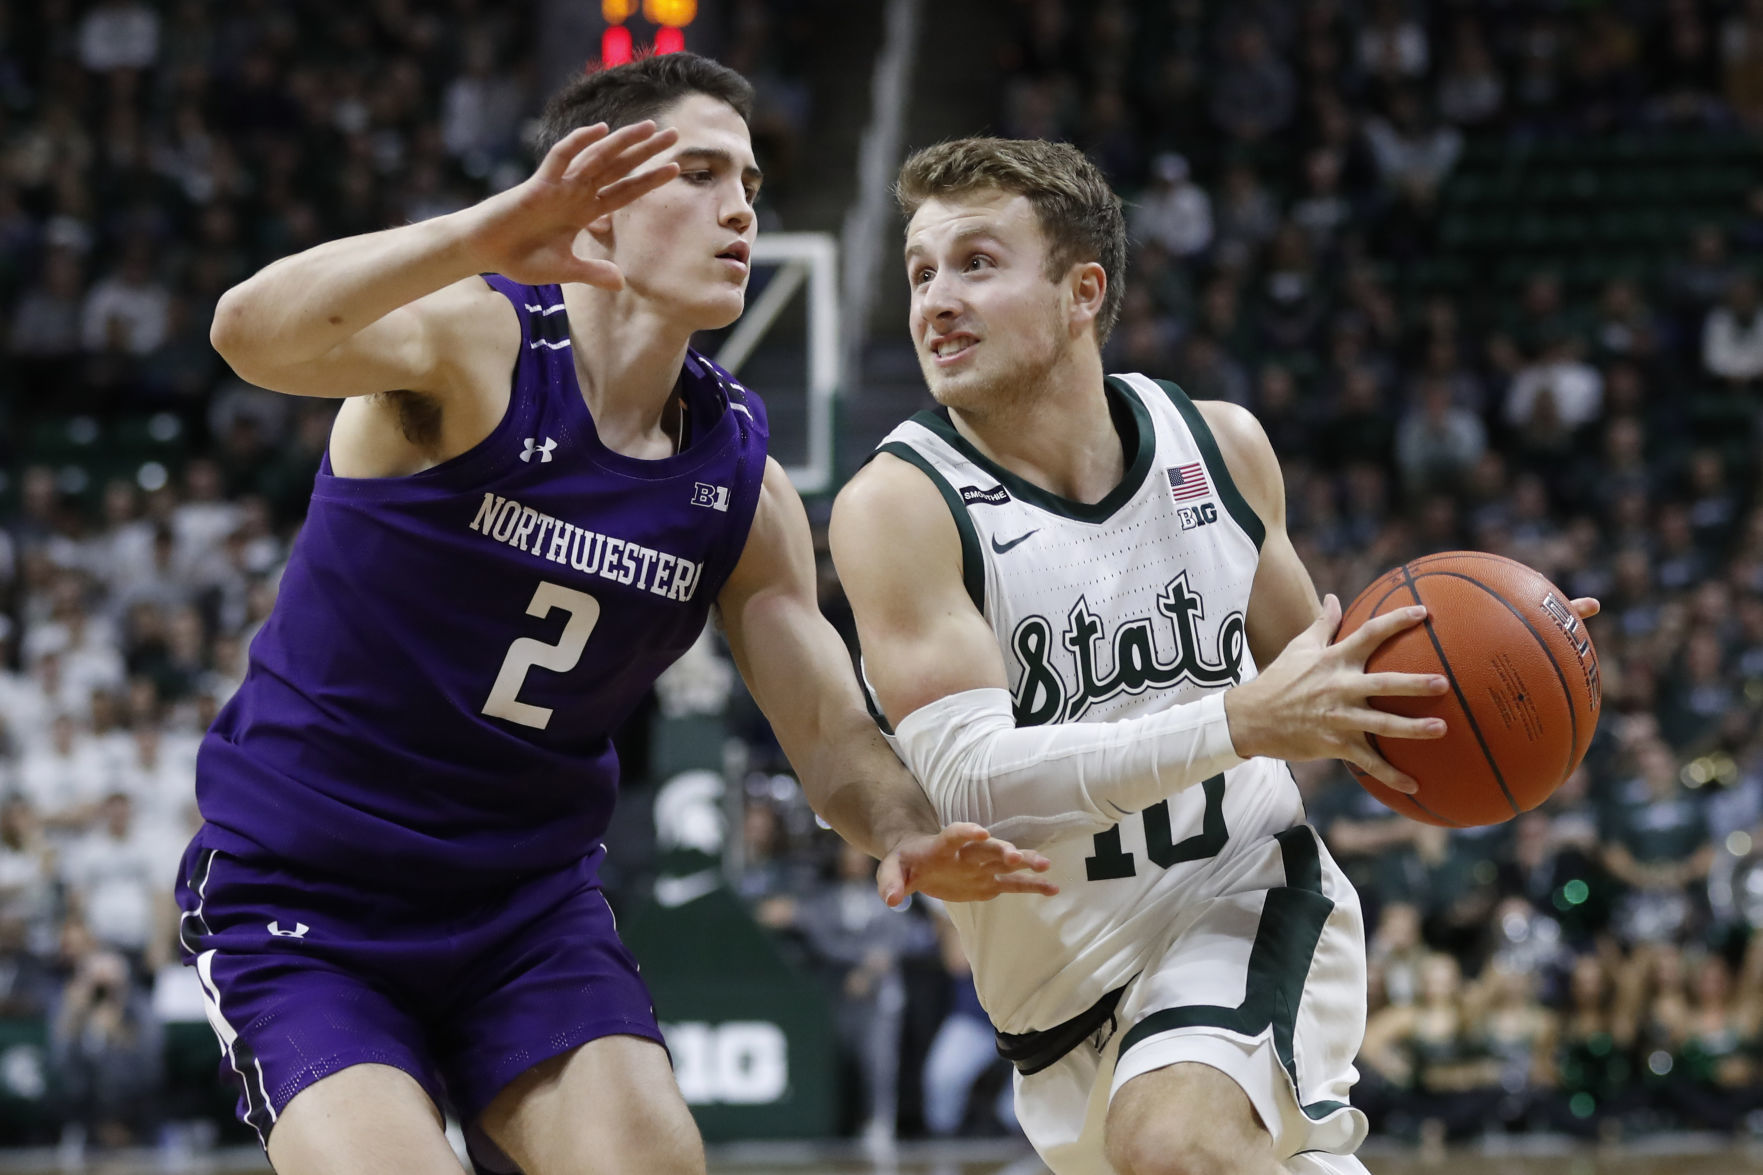 Dinner and hoops: Hoiberg to reunite with son as NU readies for ...